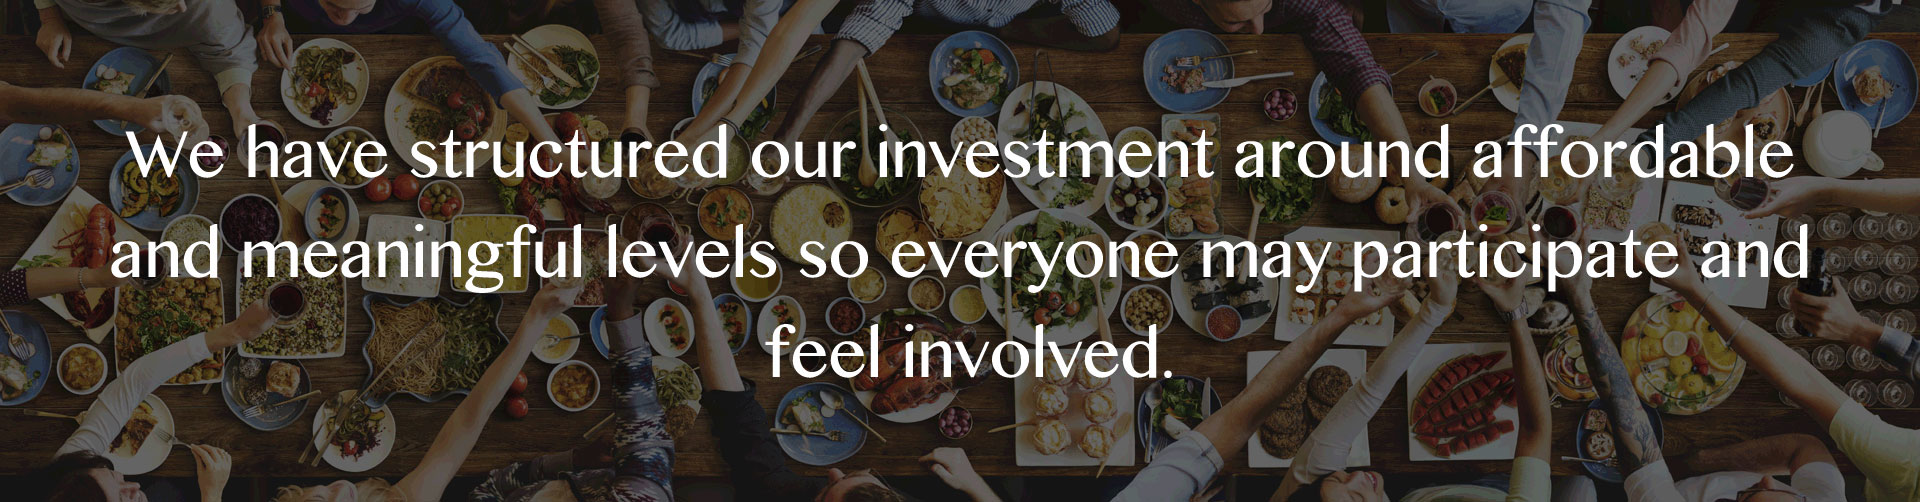 we have structured our investment around affordable and meaningful levels so everyone may participate and feel involved